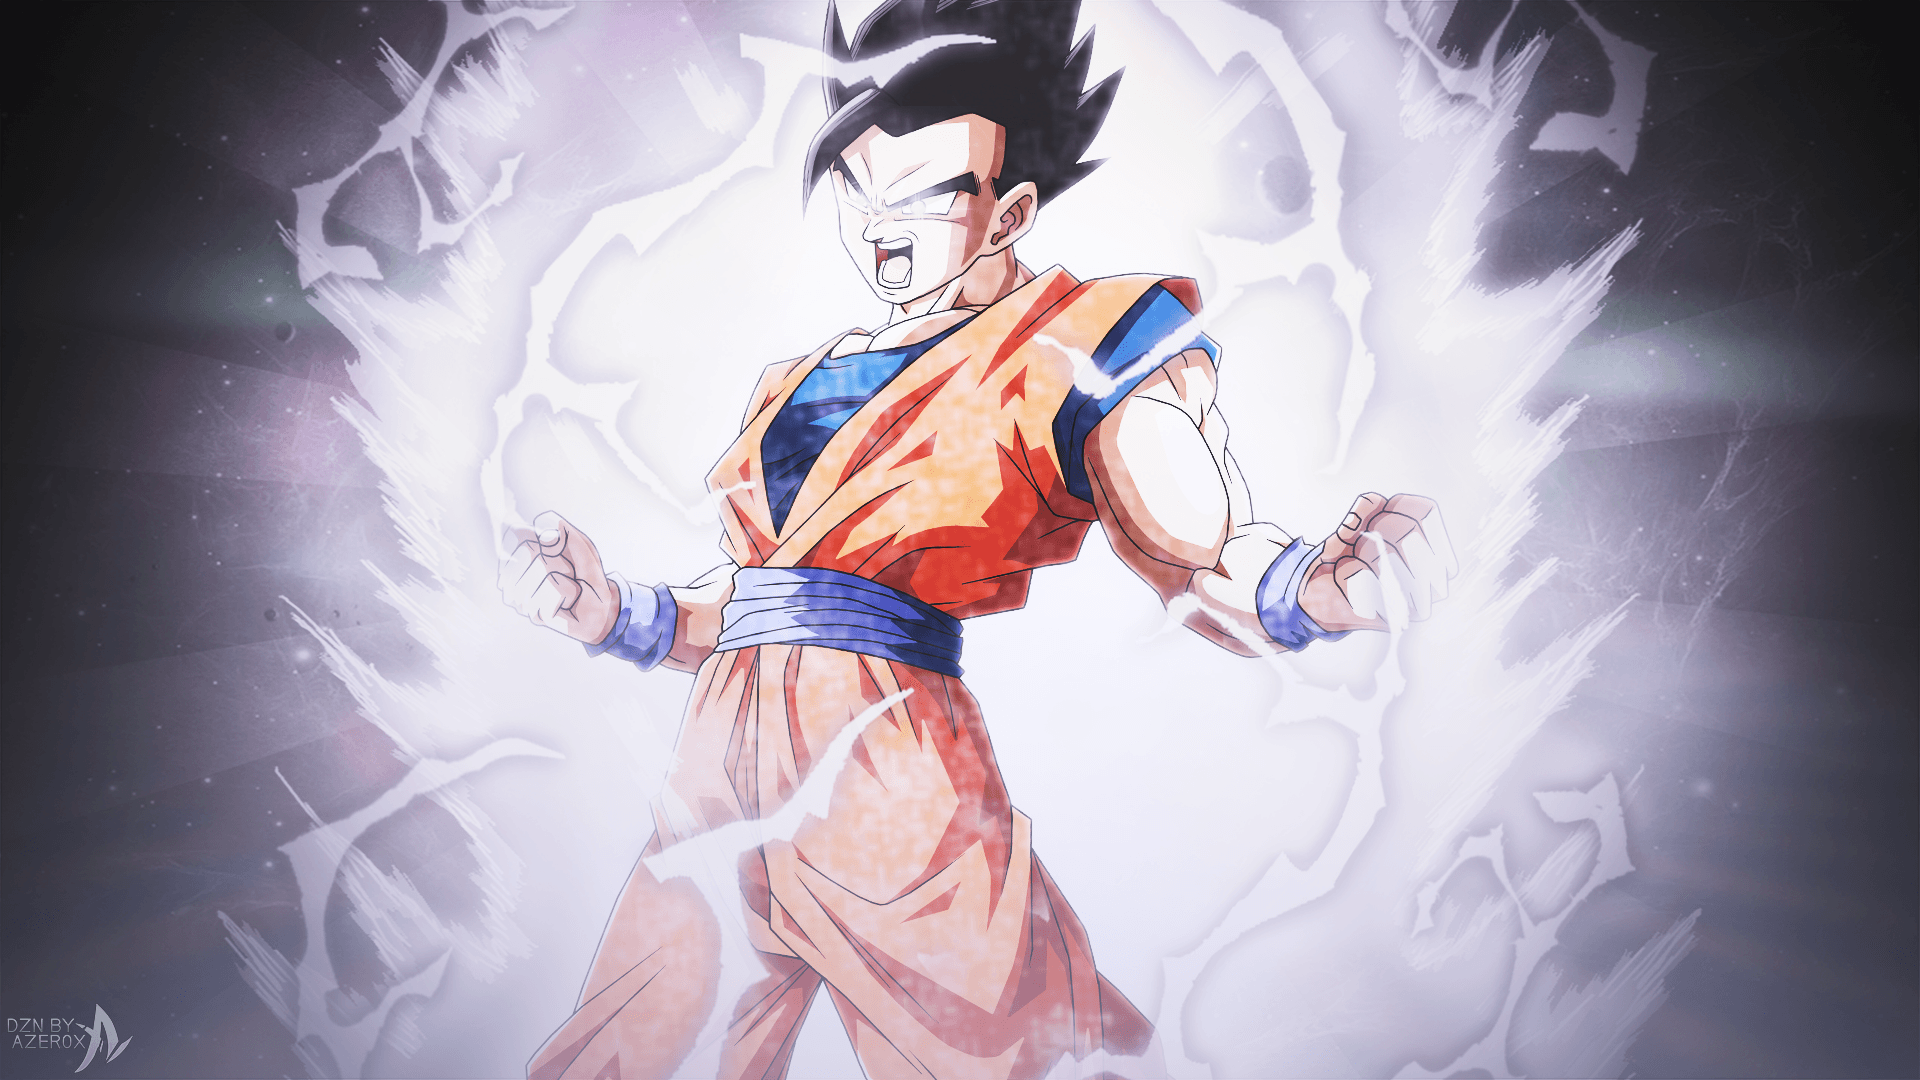 ULTIMATE GOHAN THE POTENTIAL UNLEASHED By Azer0xHD On DeviantArt